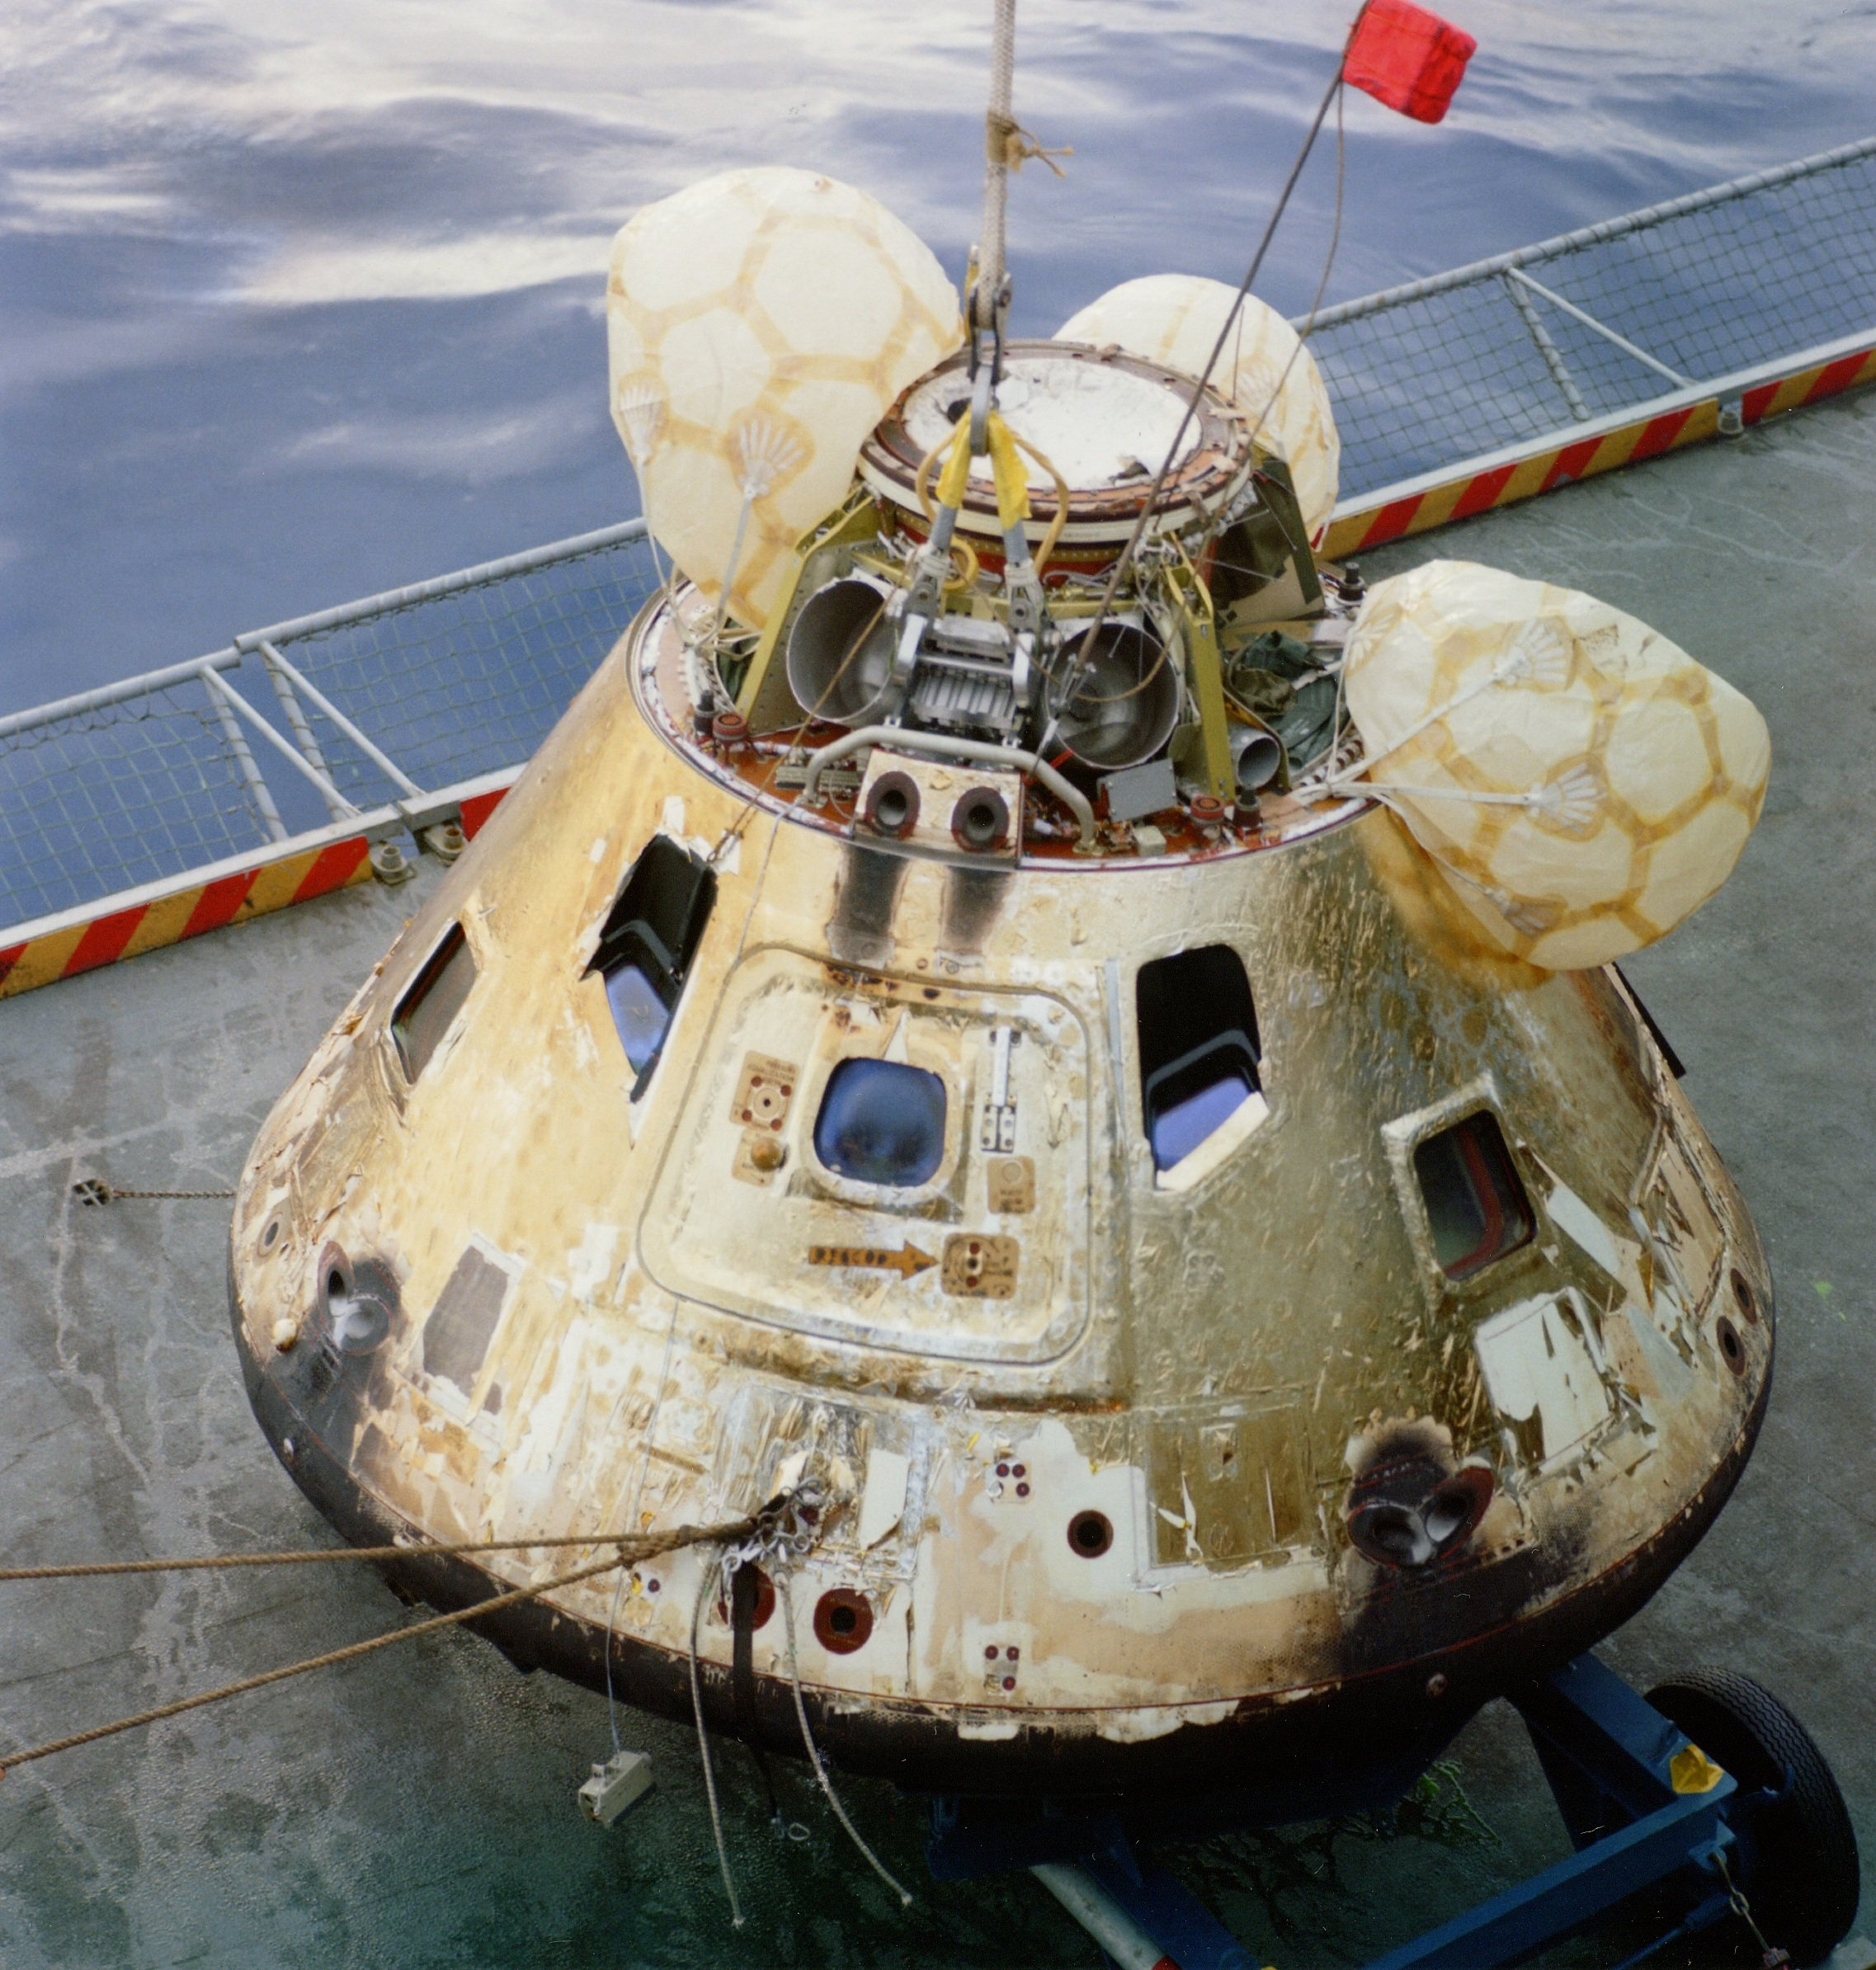 The Apollo 8 Command Module on the deck of the USS Yorktown (CVS-10) after being recovered on December 27, 1968.